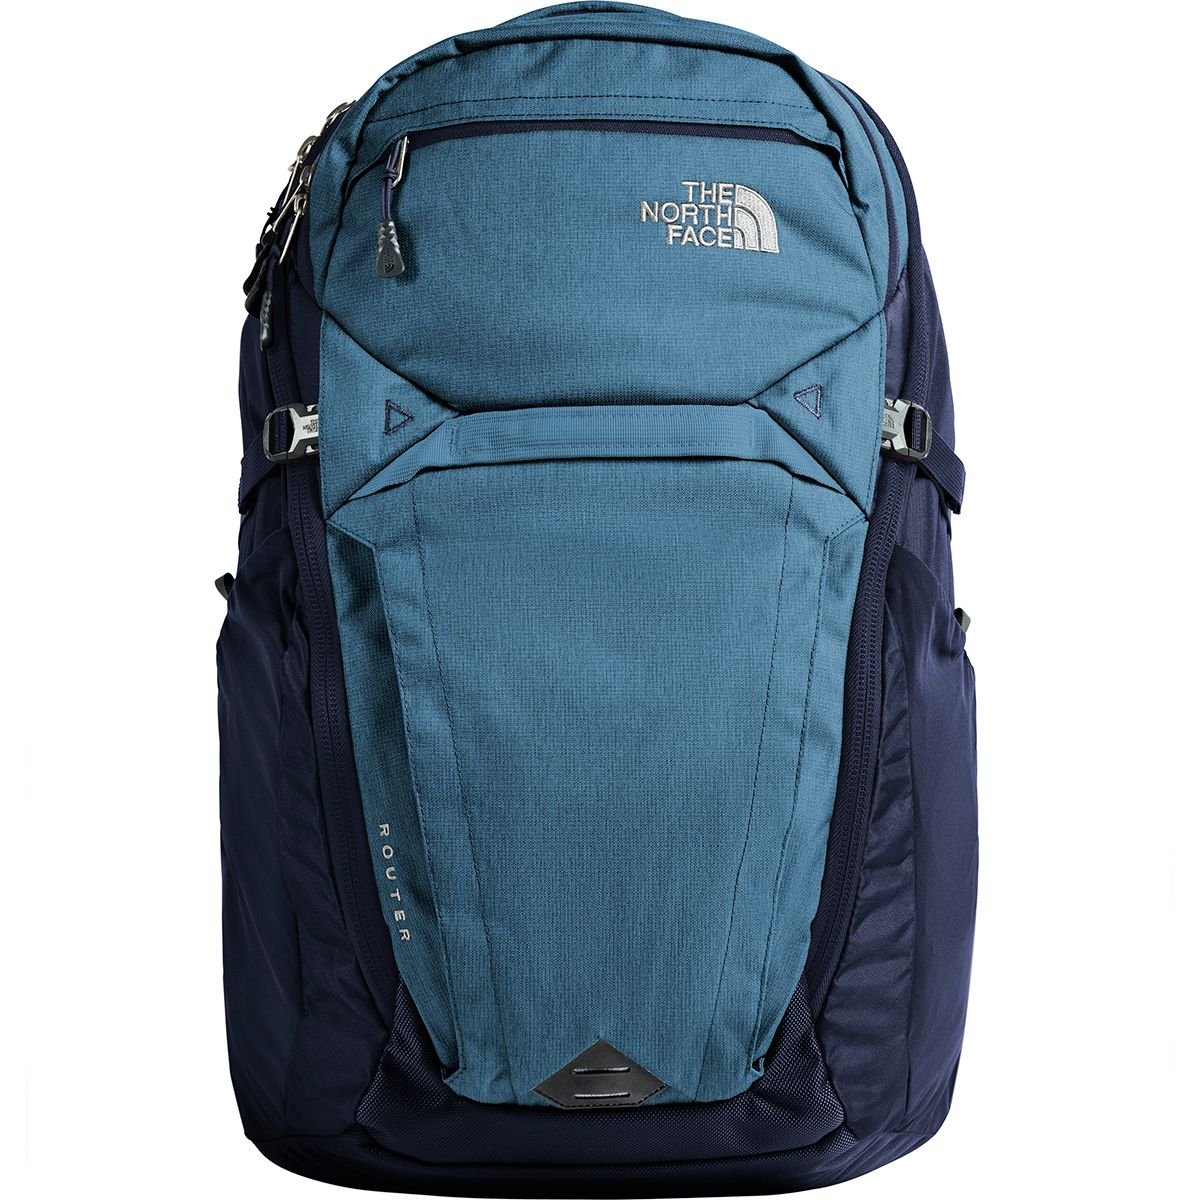 dff5c7d0c THE NORTH FACE Router Daypack